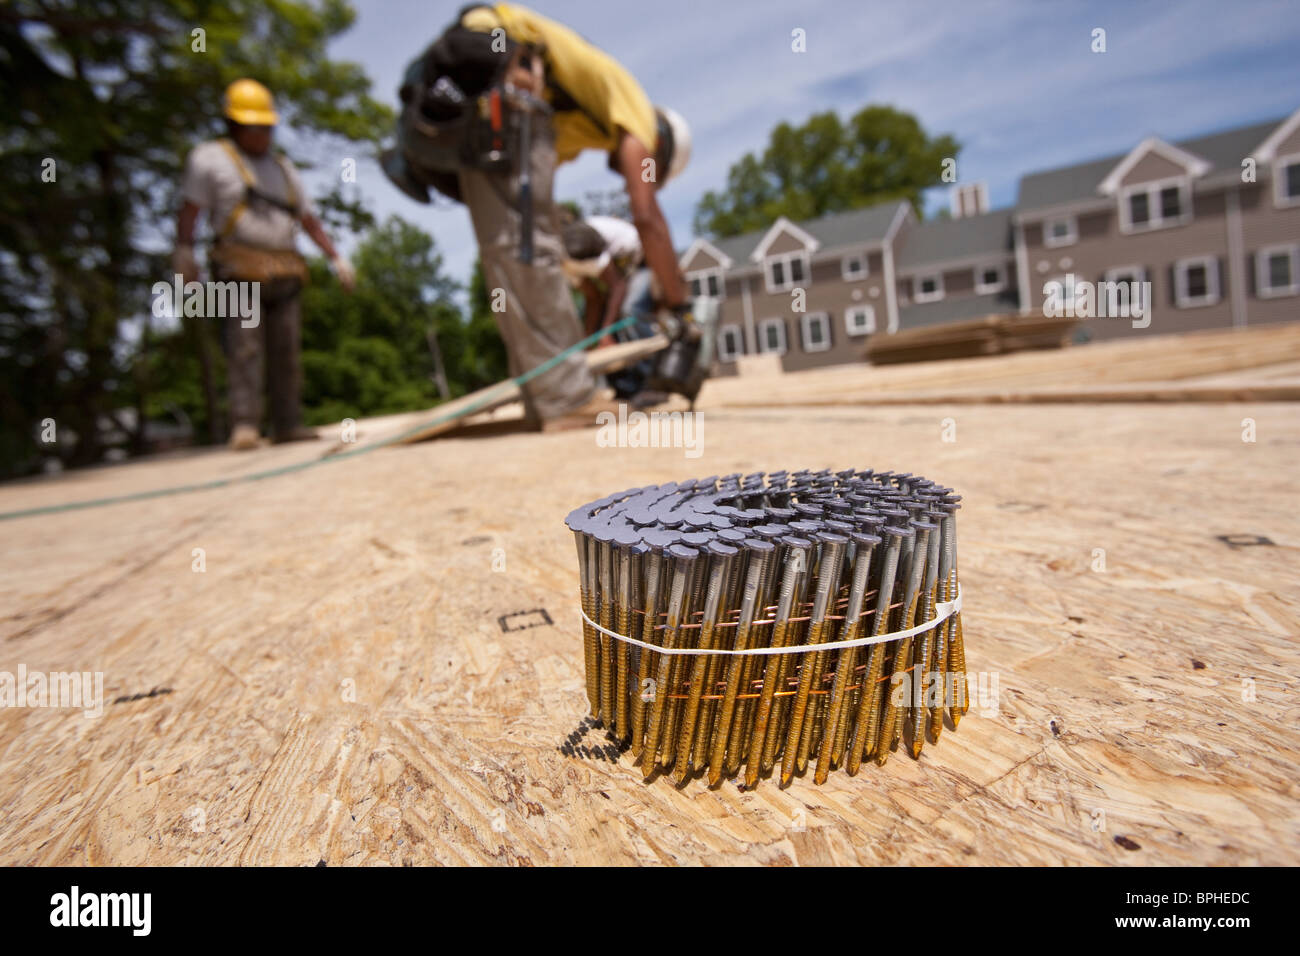 Bundle of nails with a carpenter using nail gun in the background Stock Photo